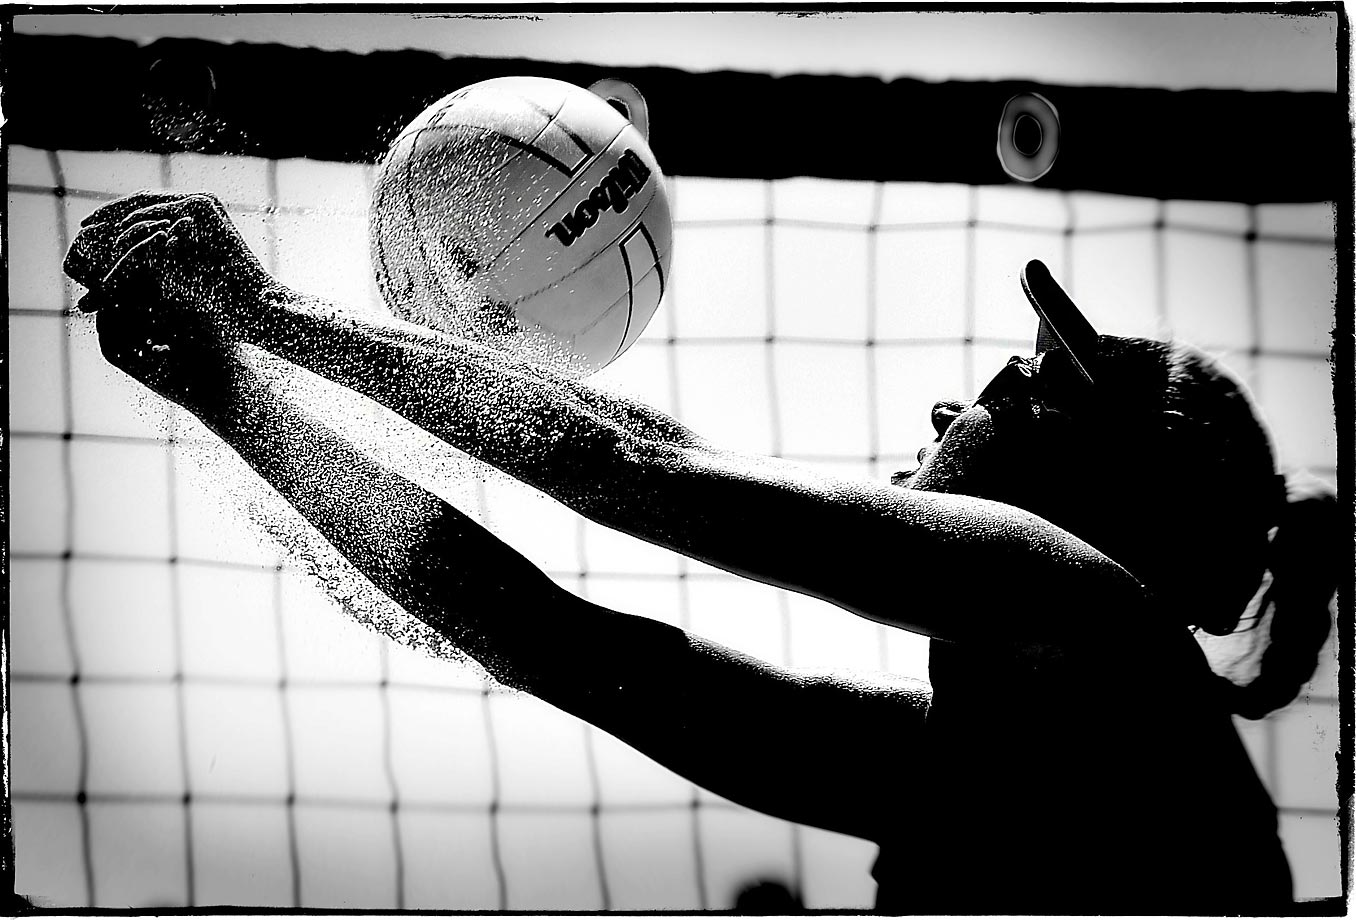 The top volleyball players were at the DOAC Pro Beach Volleyball Invitational in Atlantic City this past weekend, and SI photographer Robert Beck was there to catch the action.